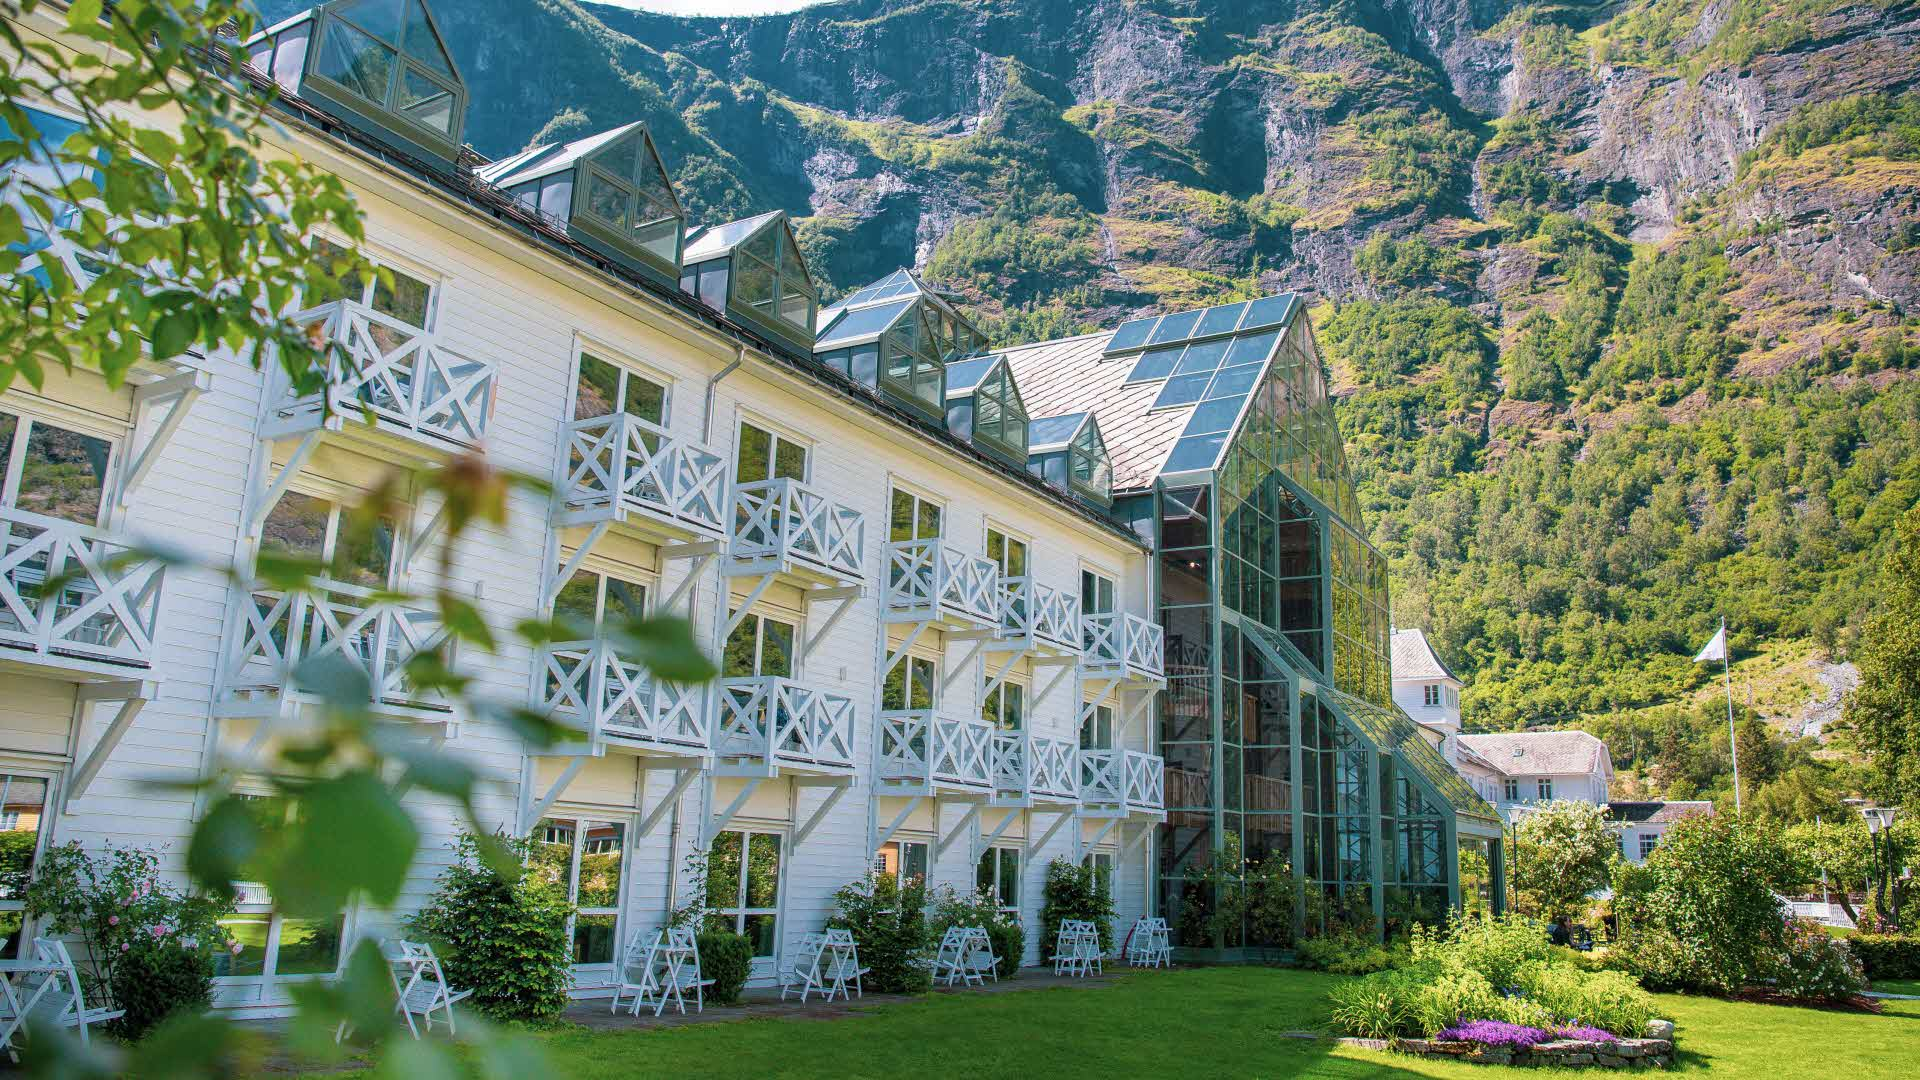 Fretheim Hotel seen from the garden in summer with leaves in front and steep mountains behind